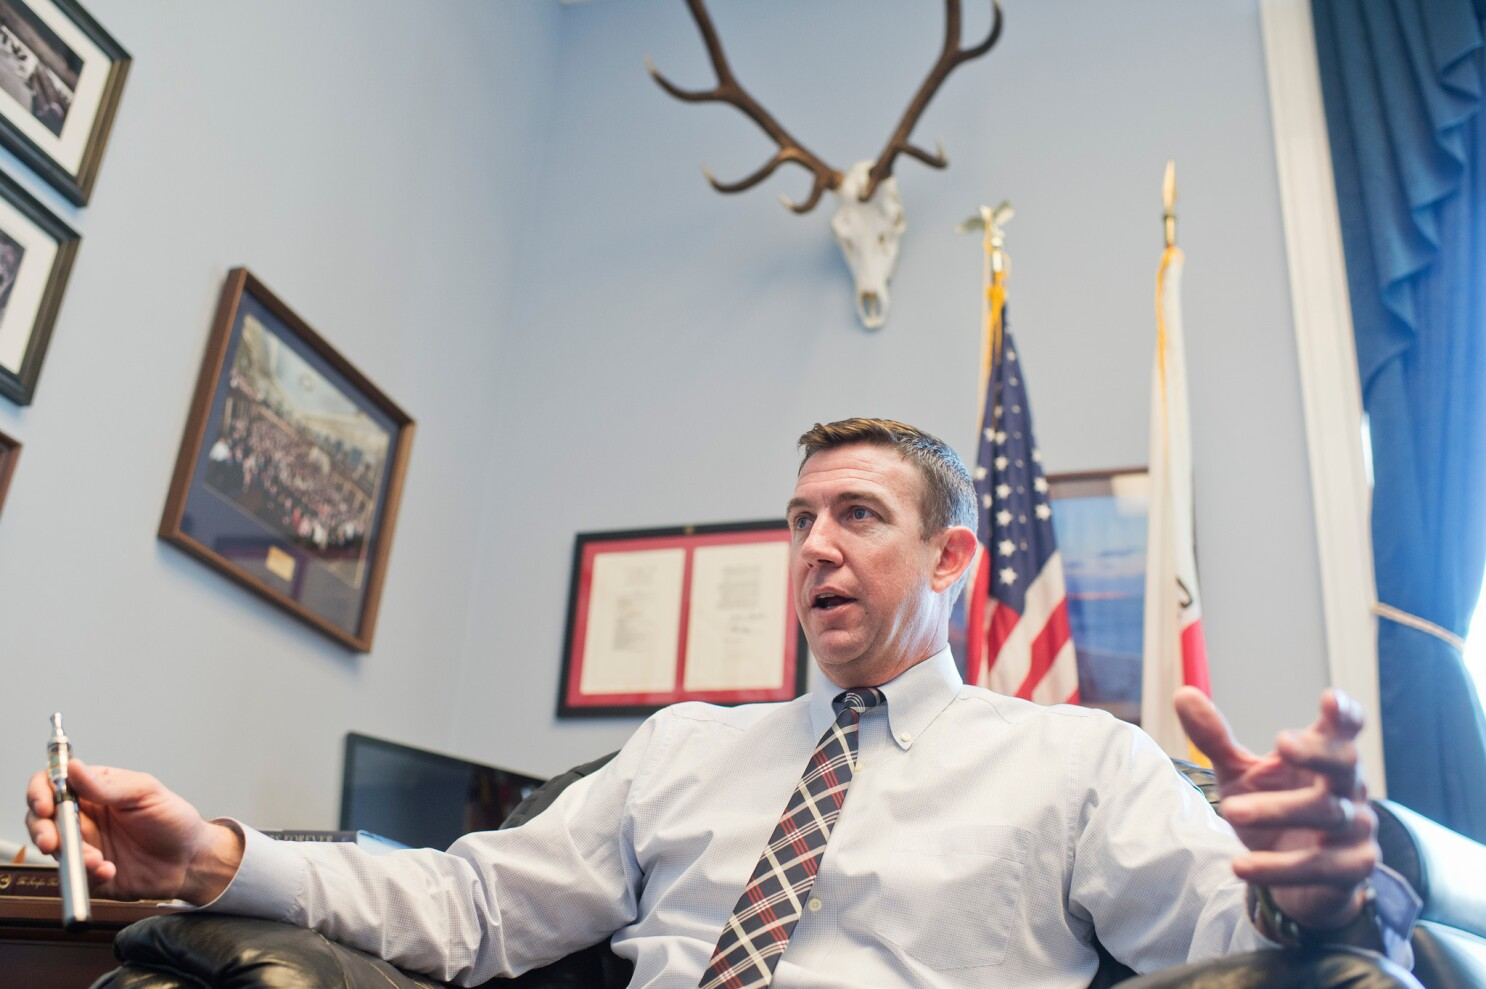 Readers React: Issa is wrong to suggest clemency for Hunter